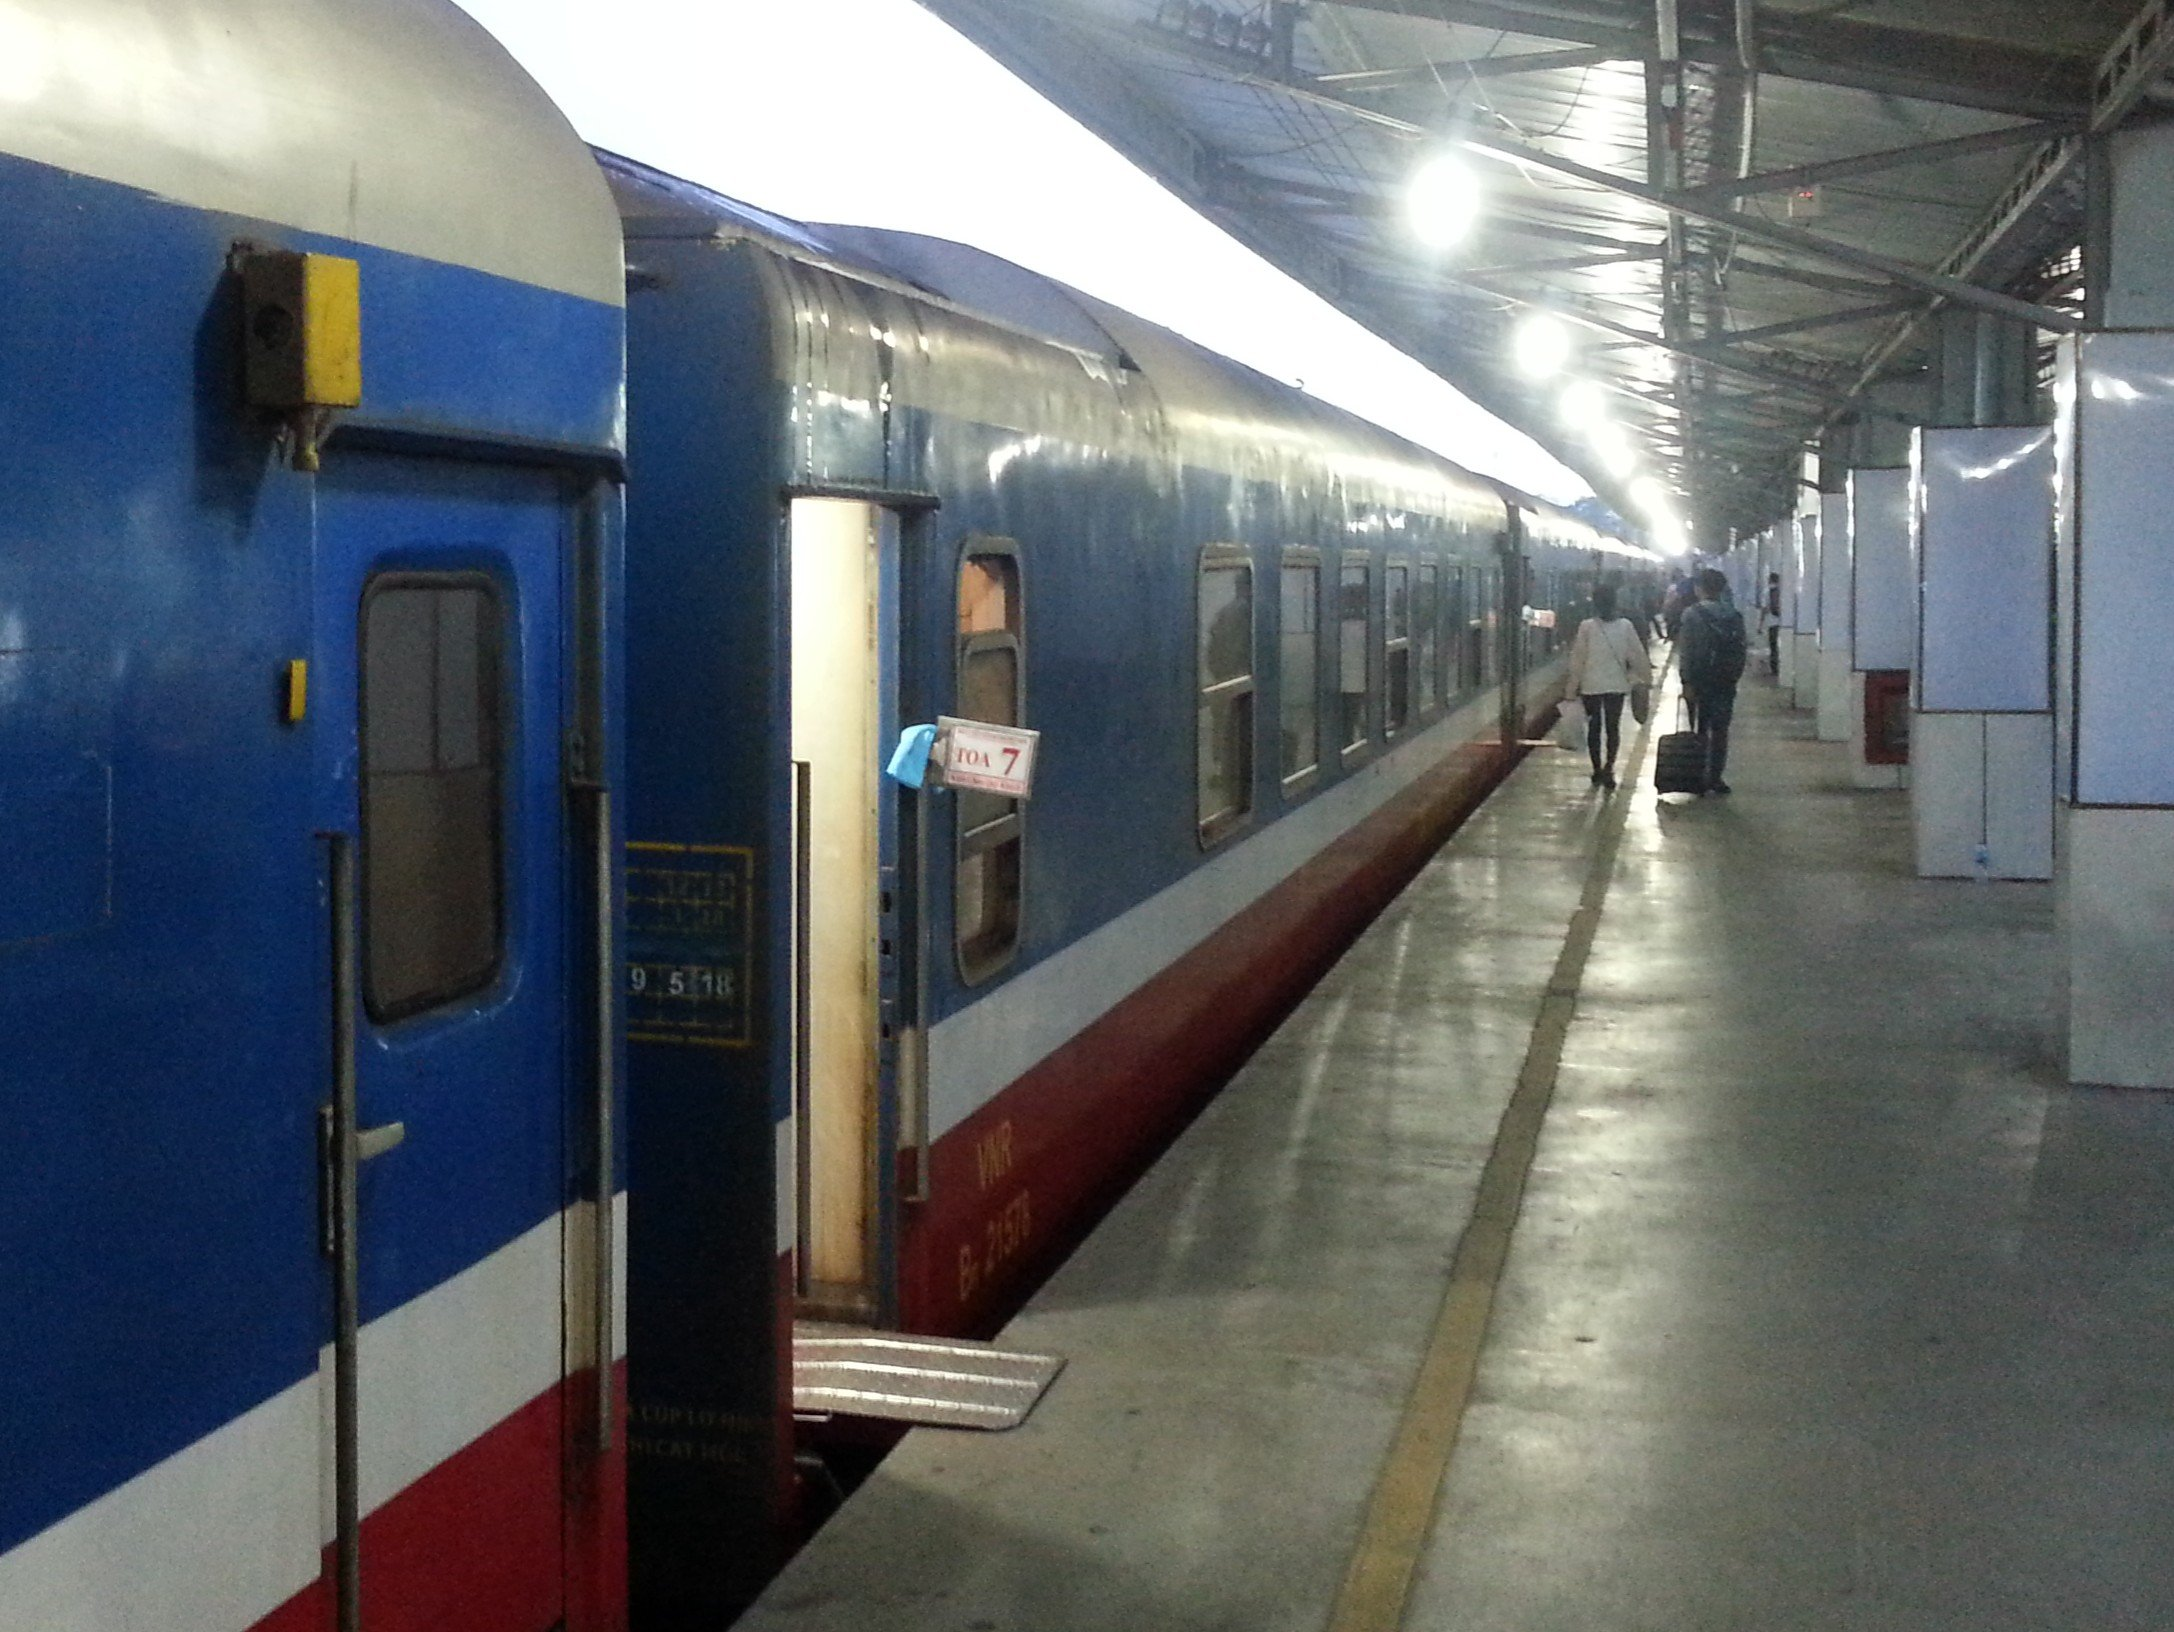 Platform 1 at Saigon Railway Station